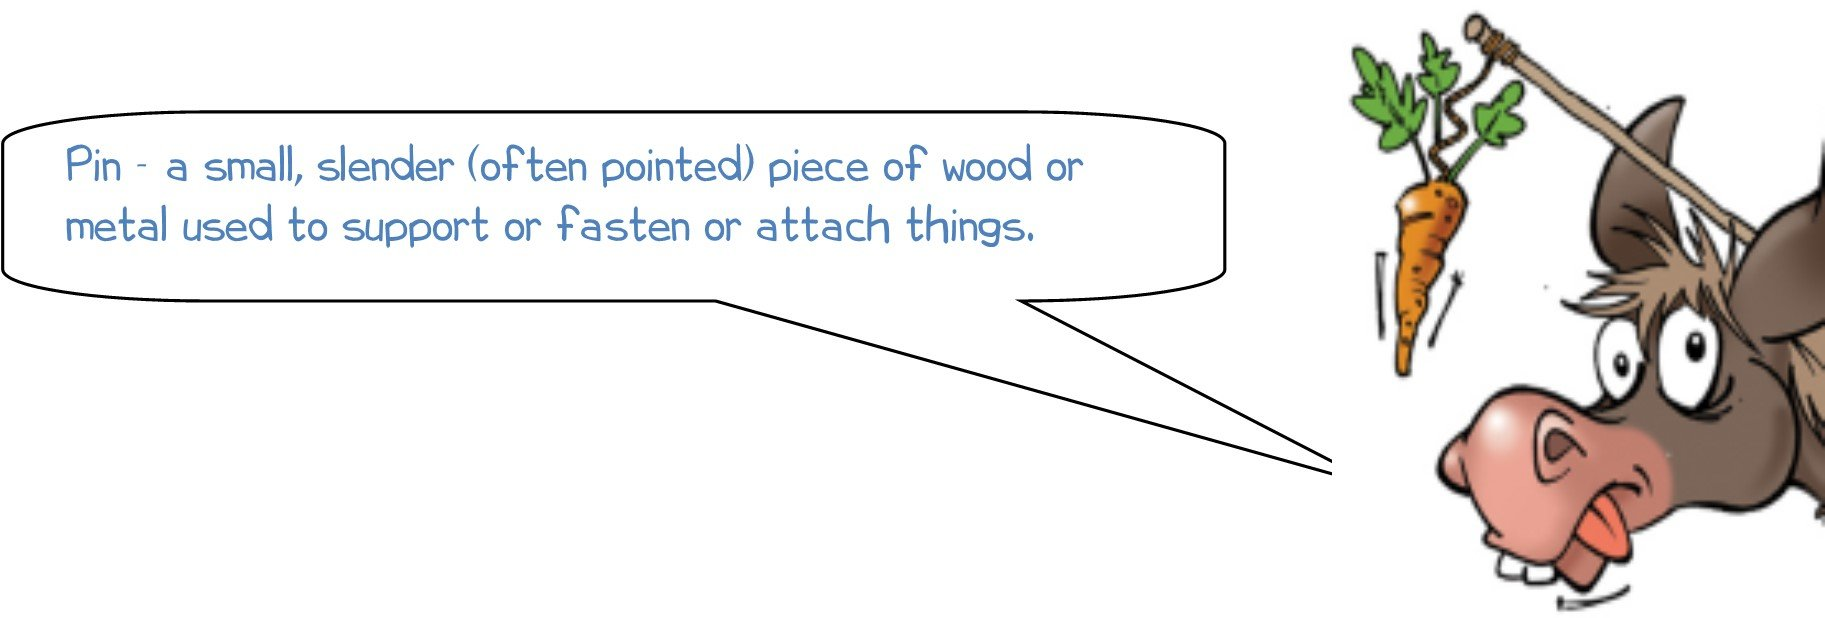 Pin - a small, slender (often pointed) piece of wood or metal used to support or fasten or attach things.